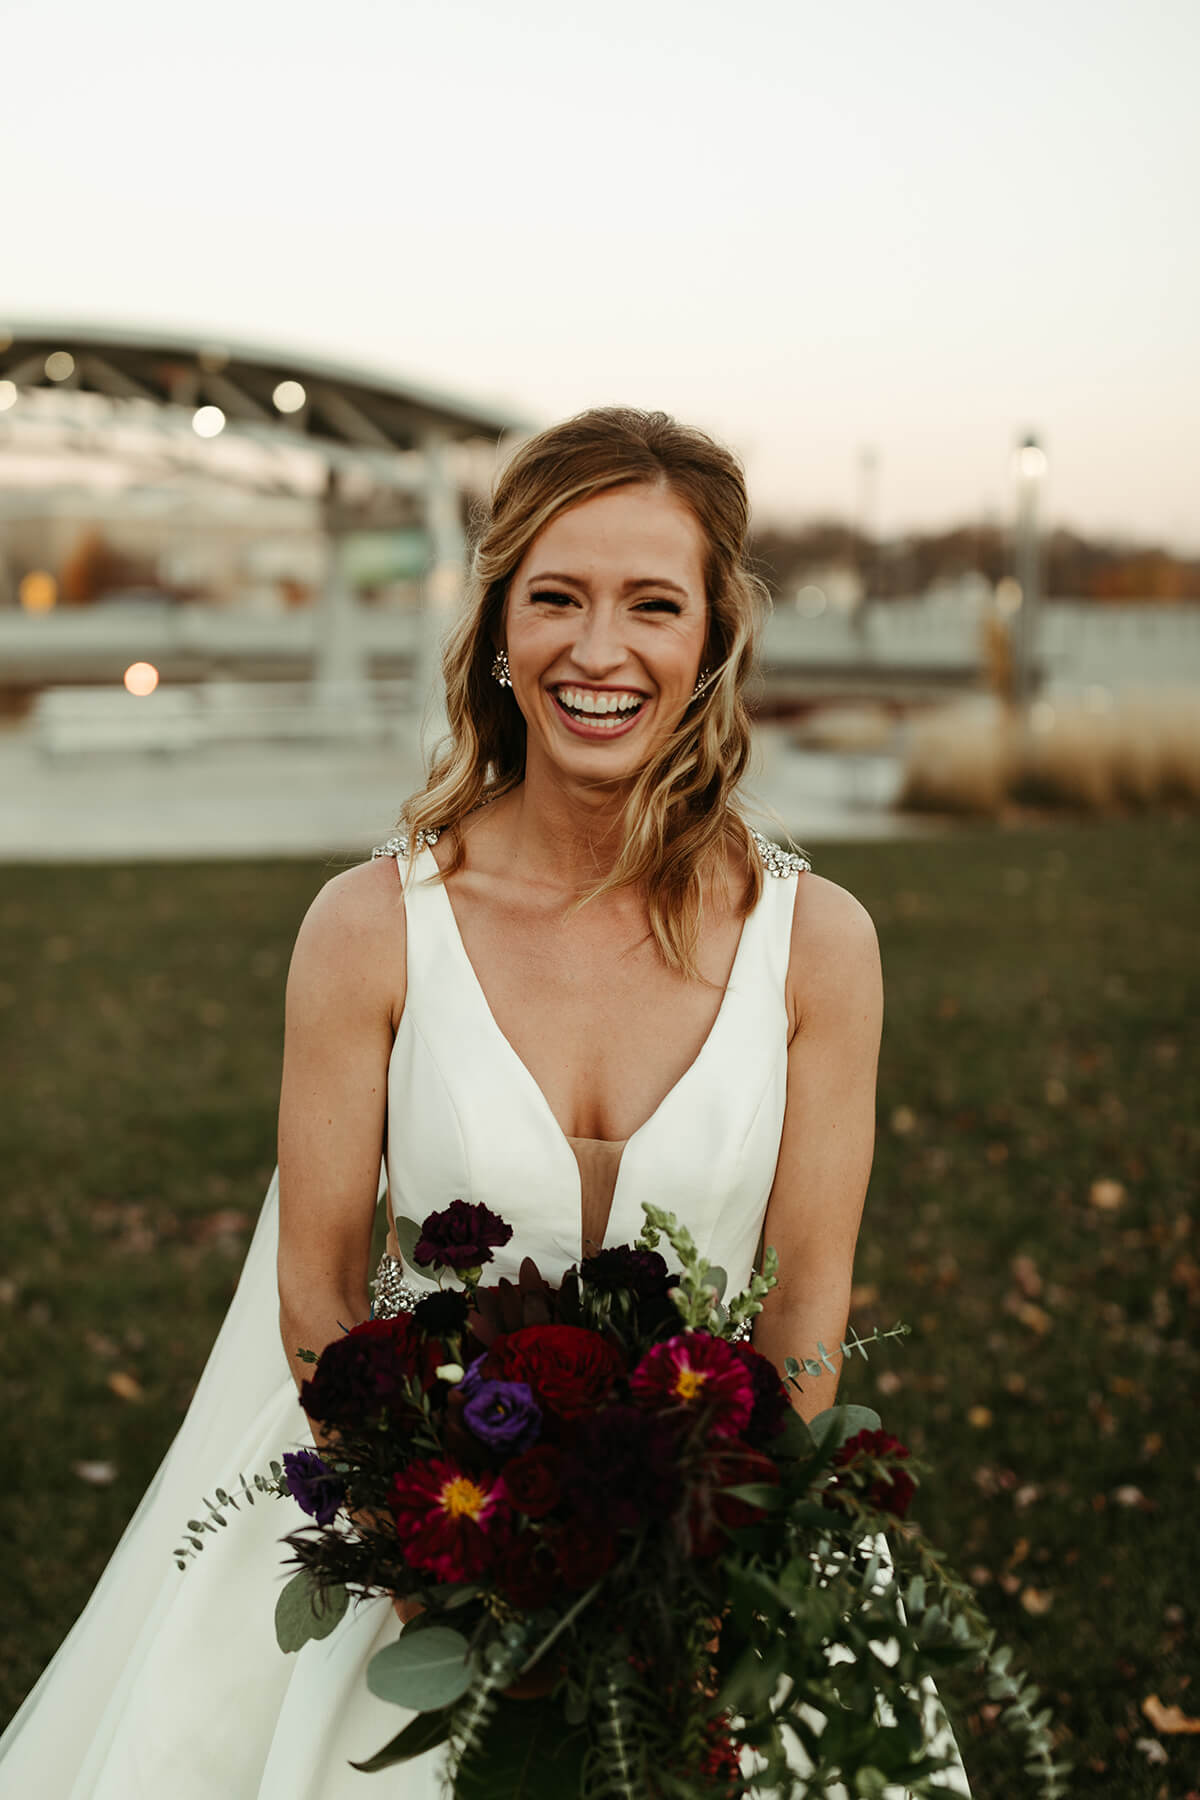 Fall Wedding at The Venue - T+J-9627-2